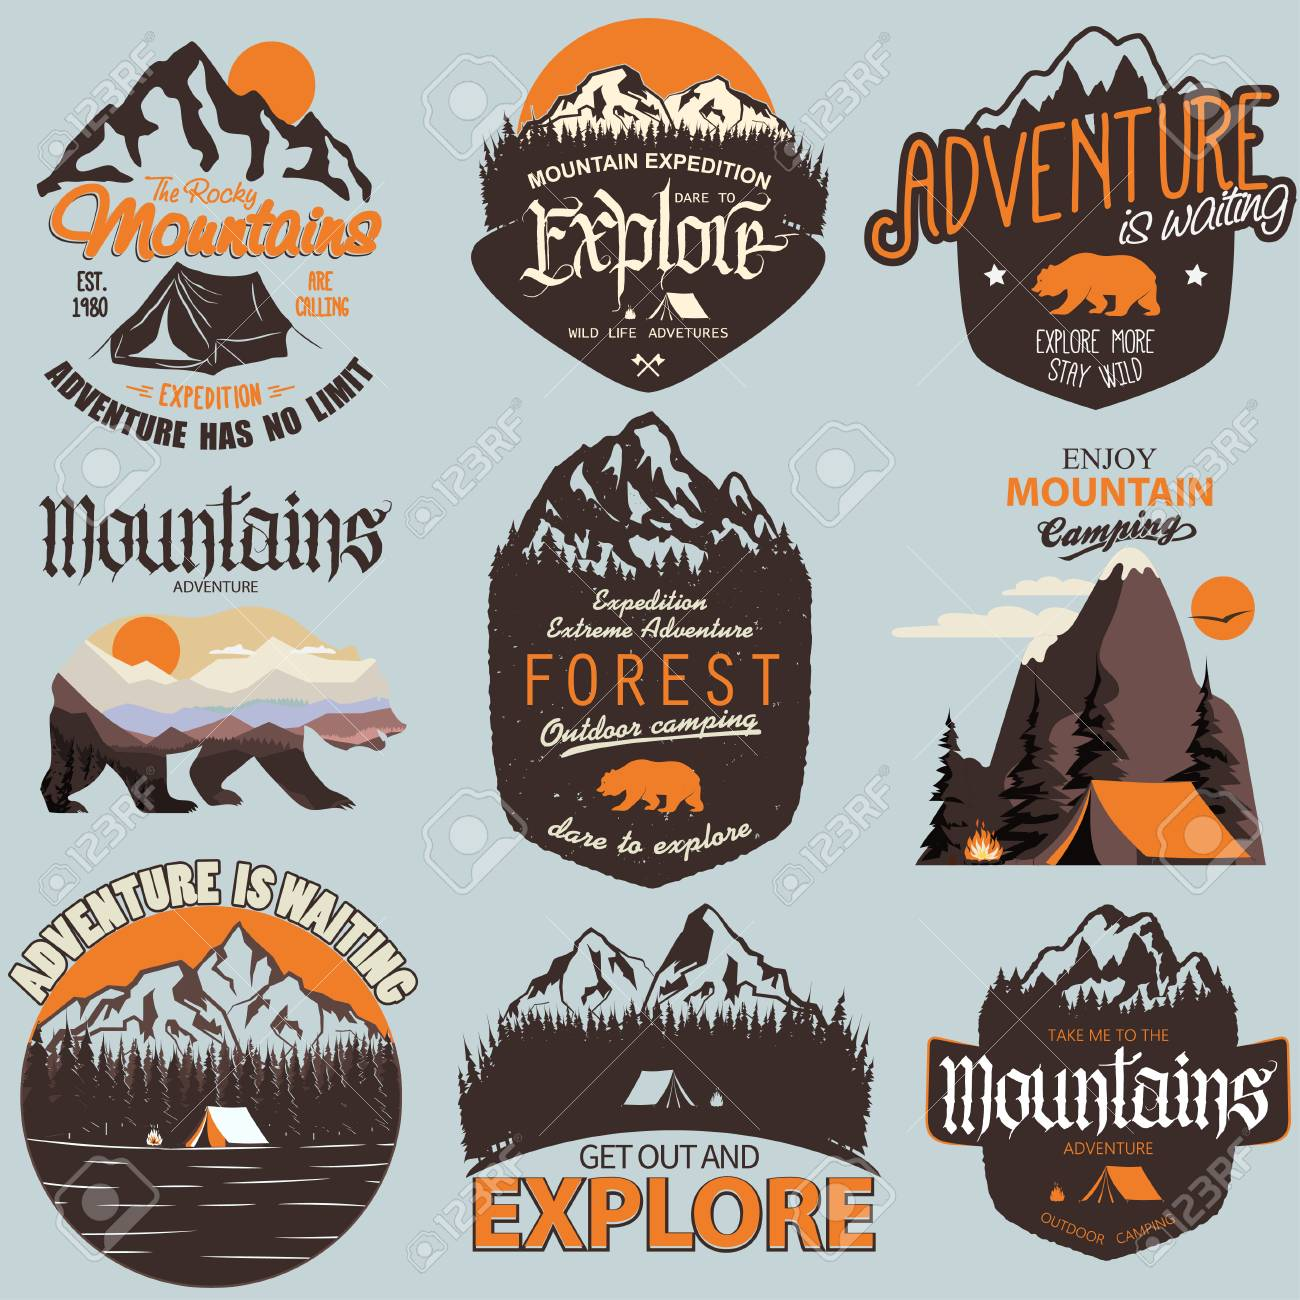 f8b3e3a5 Adventure t-shirt print set. Outdoor expedition typography, poster with  mountains and bear